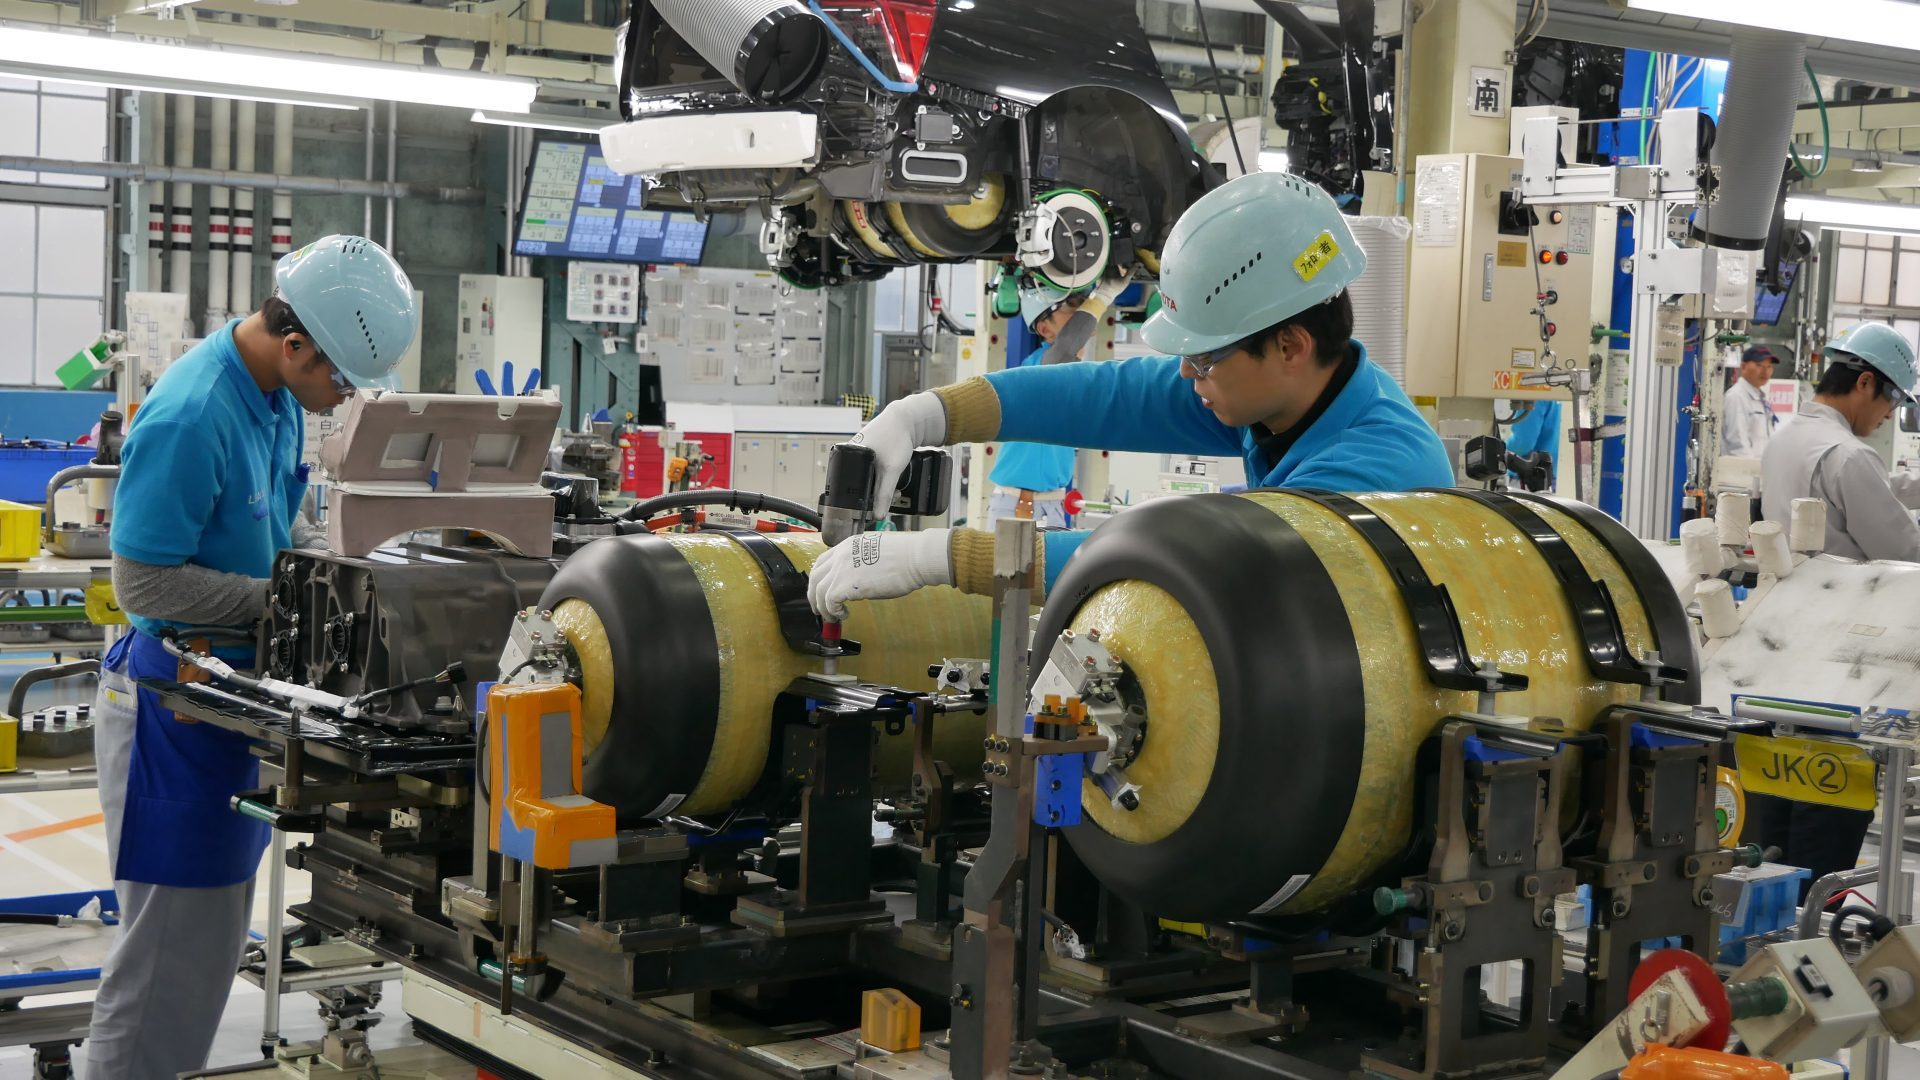 Amid global push to reduce carbon emissions, Japan looks